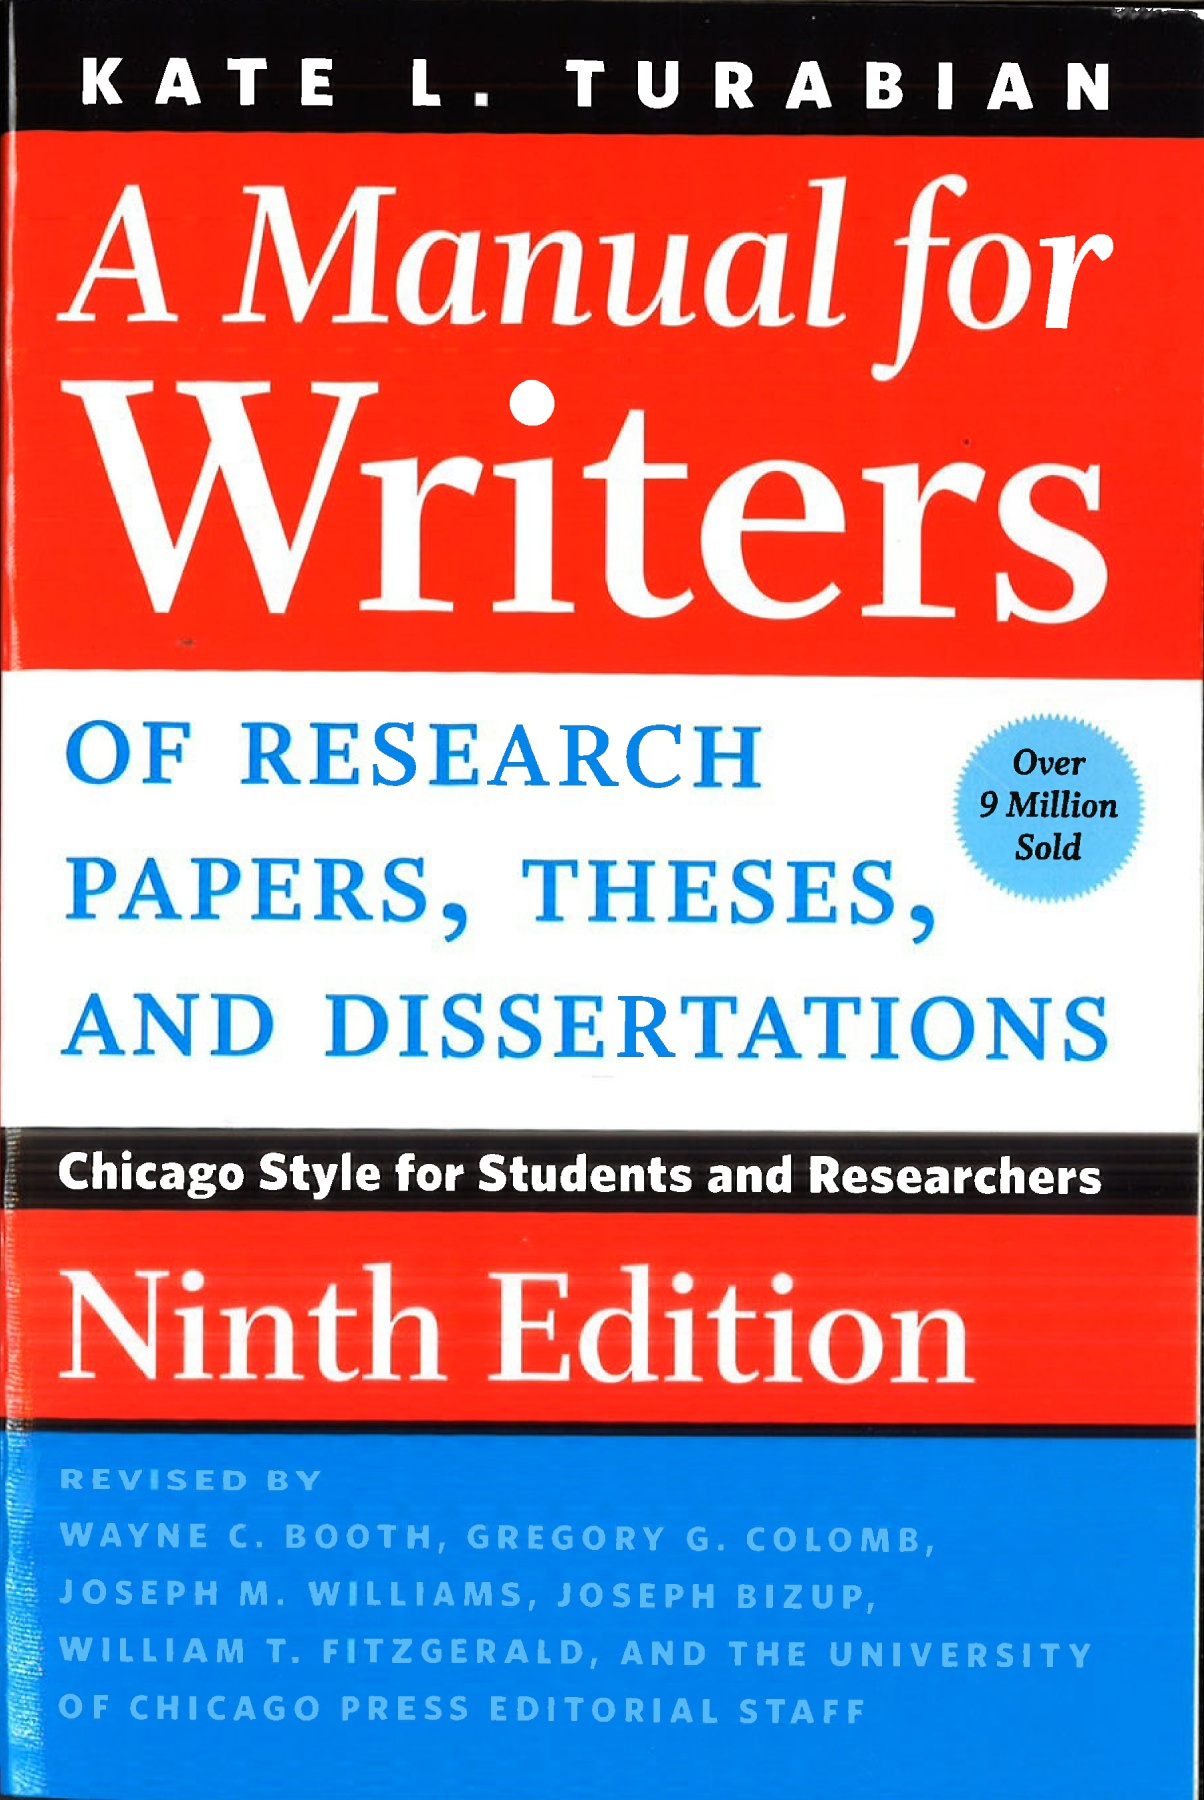 008 Research Paper Manual For Writers Of Papers Theses And Sensational A Dissertations 8th Edition Pdf Eighth Full